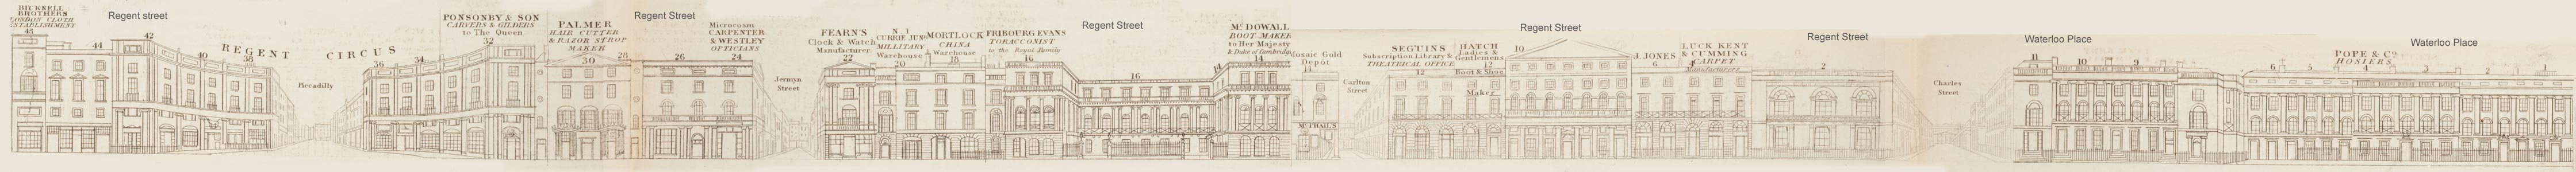 map - Tallis's London street views : No. 17. Regent Street, division 4 (east)